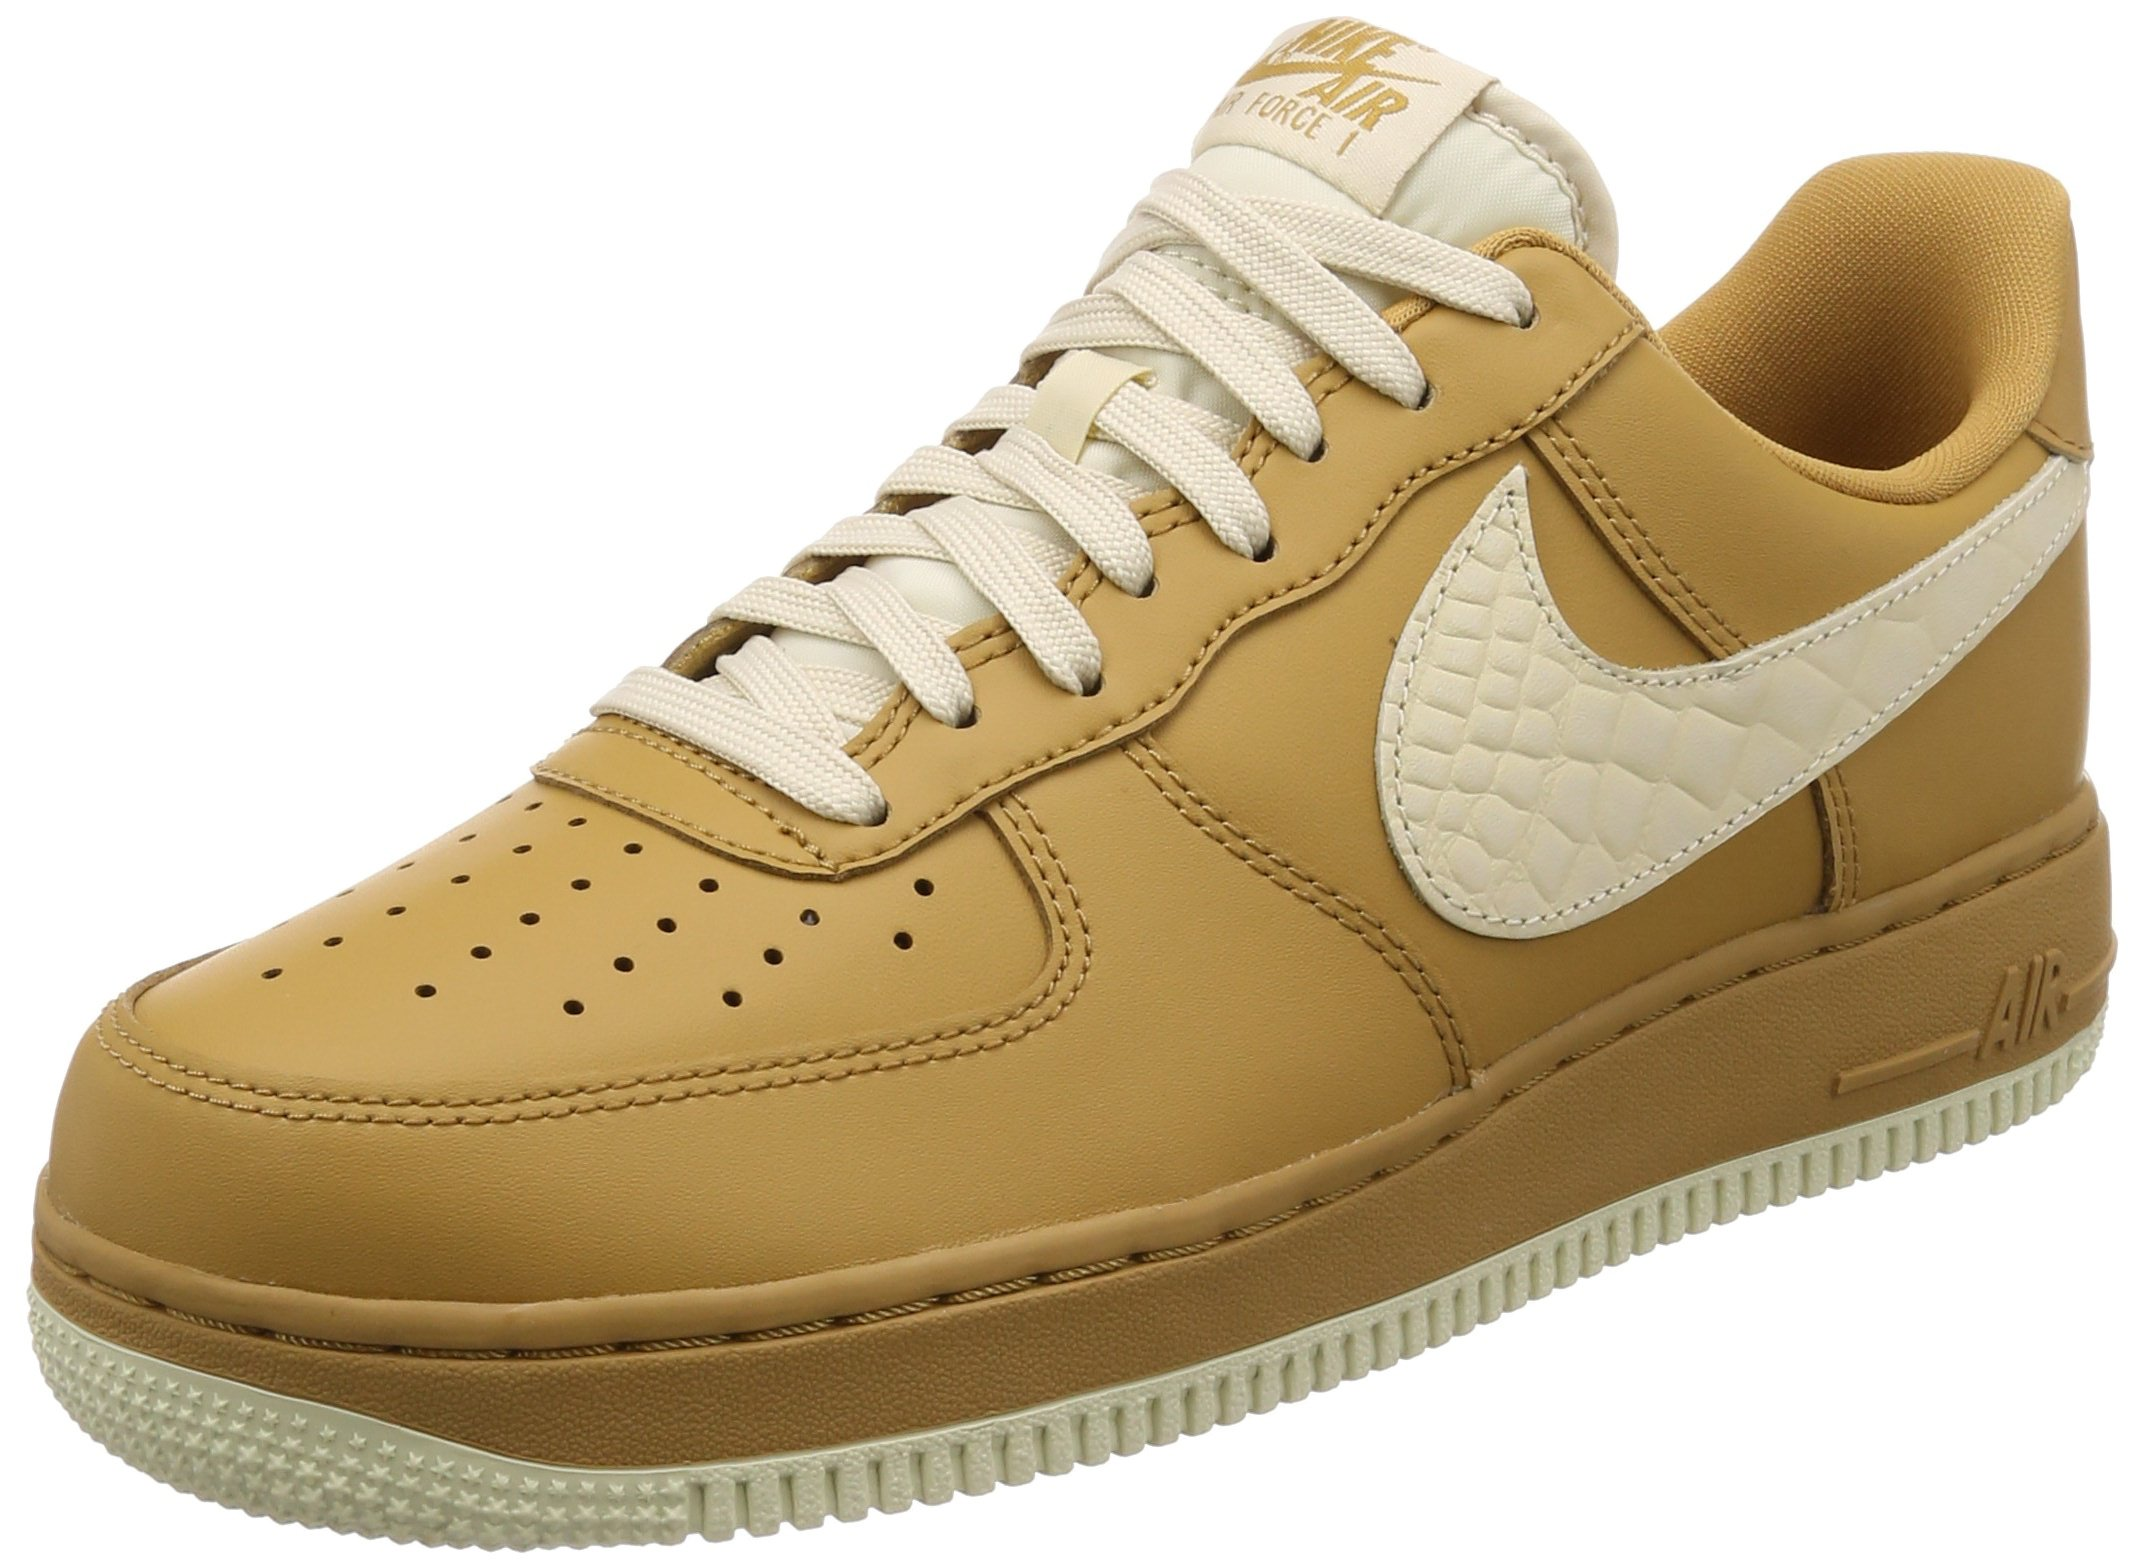 low priced 289fb cdd2f Galleon - NIKE Air Force 1 Inch07 Lv8 Mens Style  823511-703 Size  9